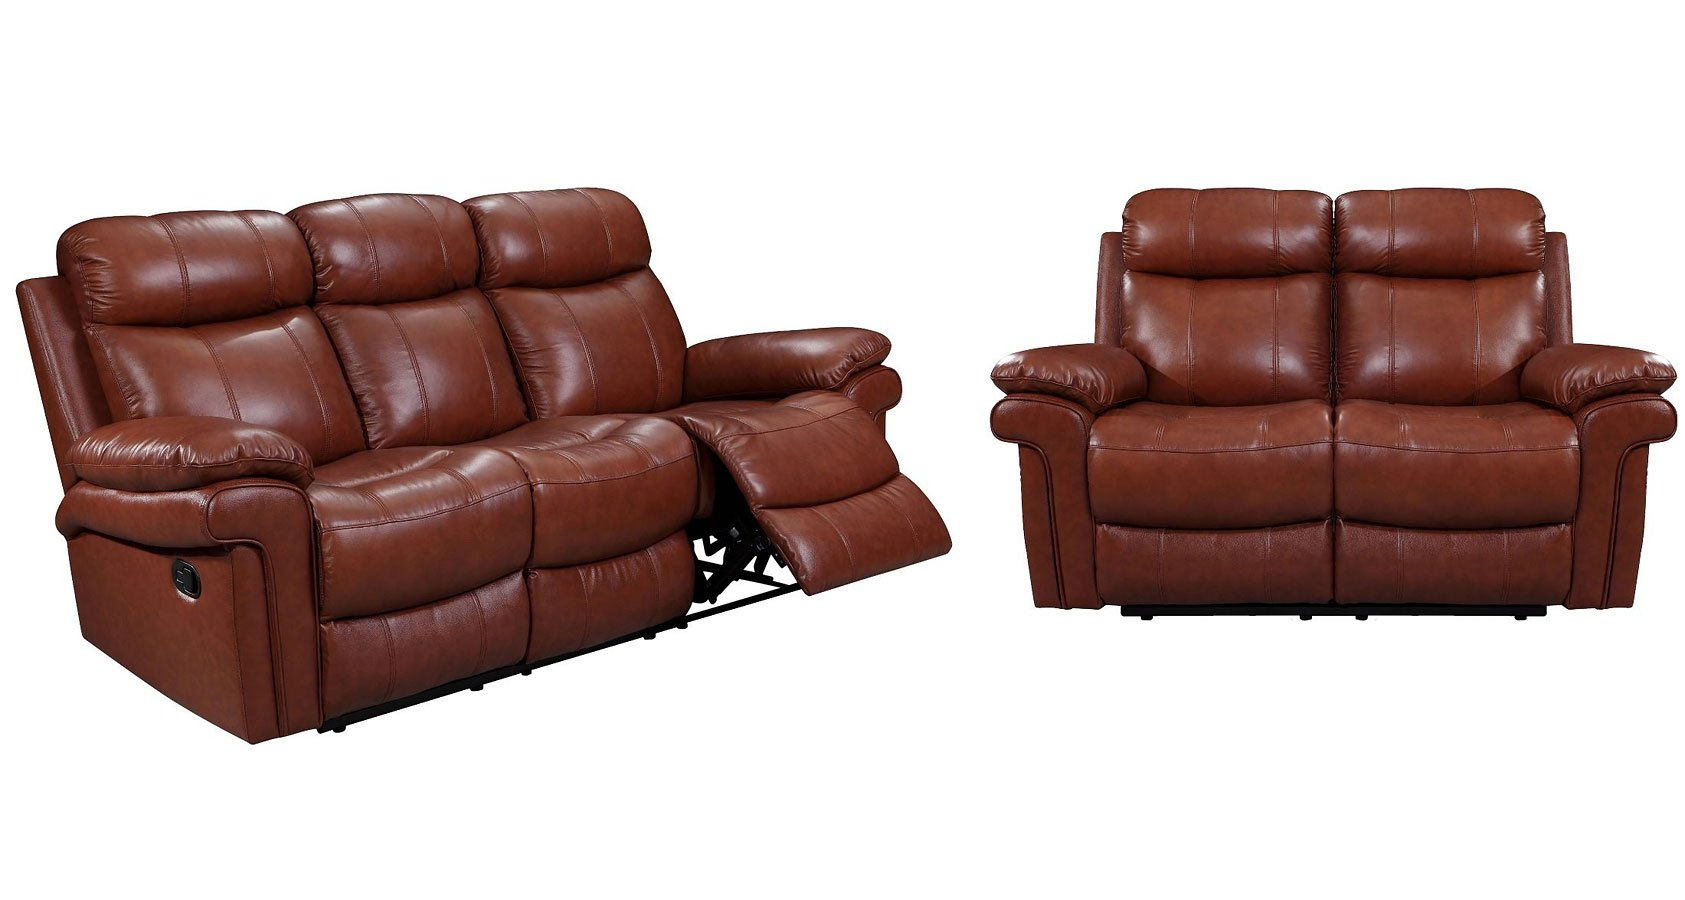 power reclining leather sofa sets small sectional dimensions joplin living room set saddle